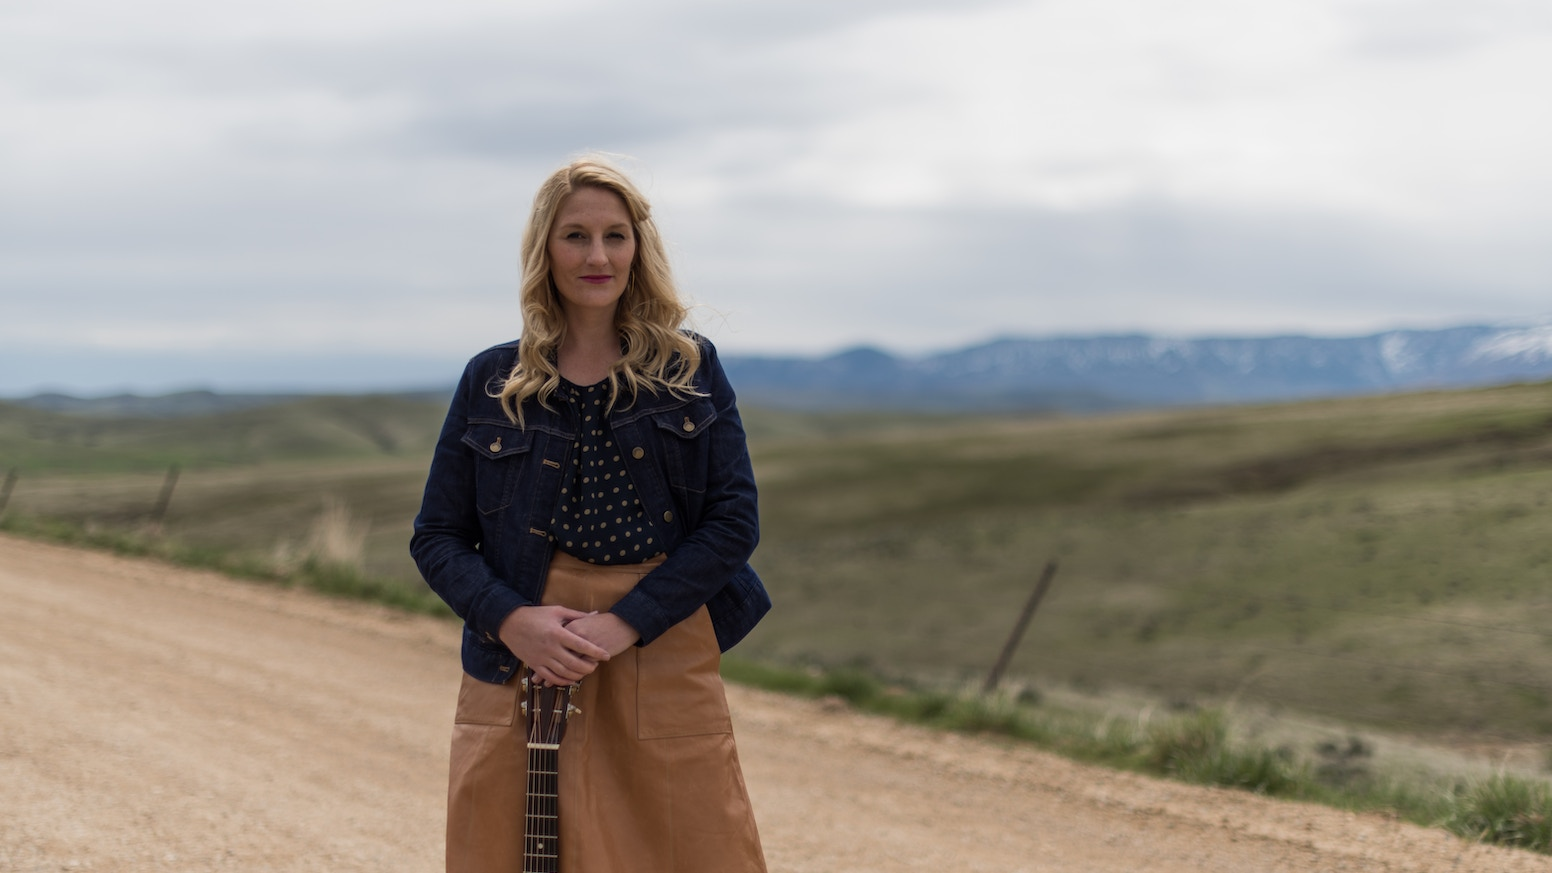 """The wilderness of northern Wyoming opened a new creative landscape inside of me. The new album, """"Redwing"""" is the result."""